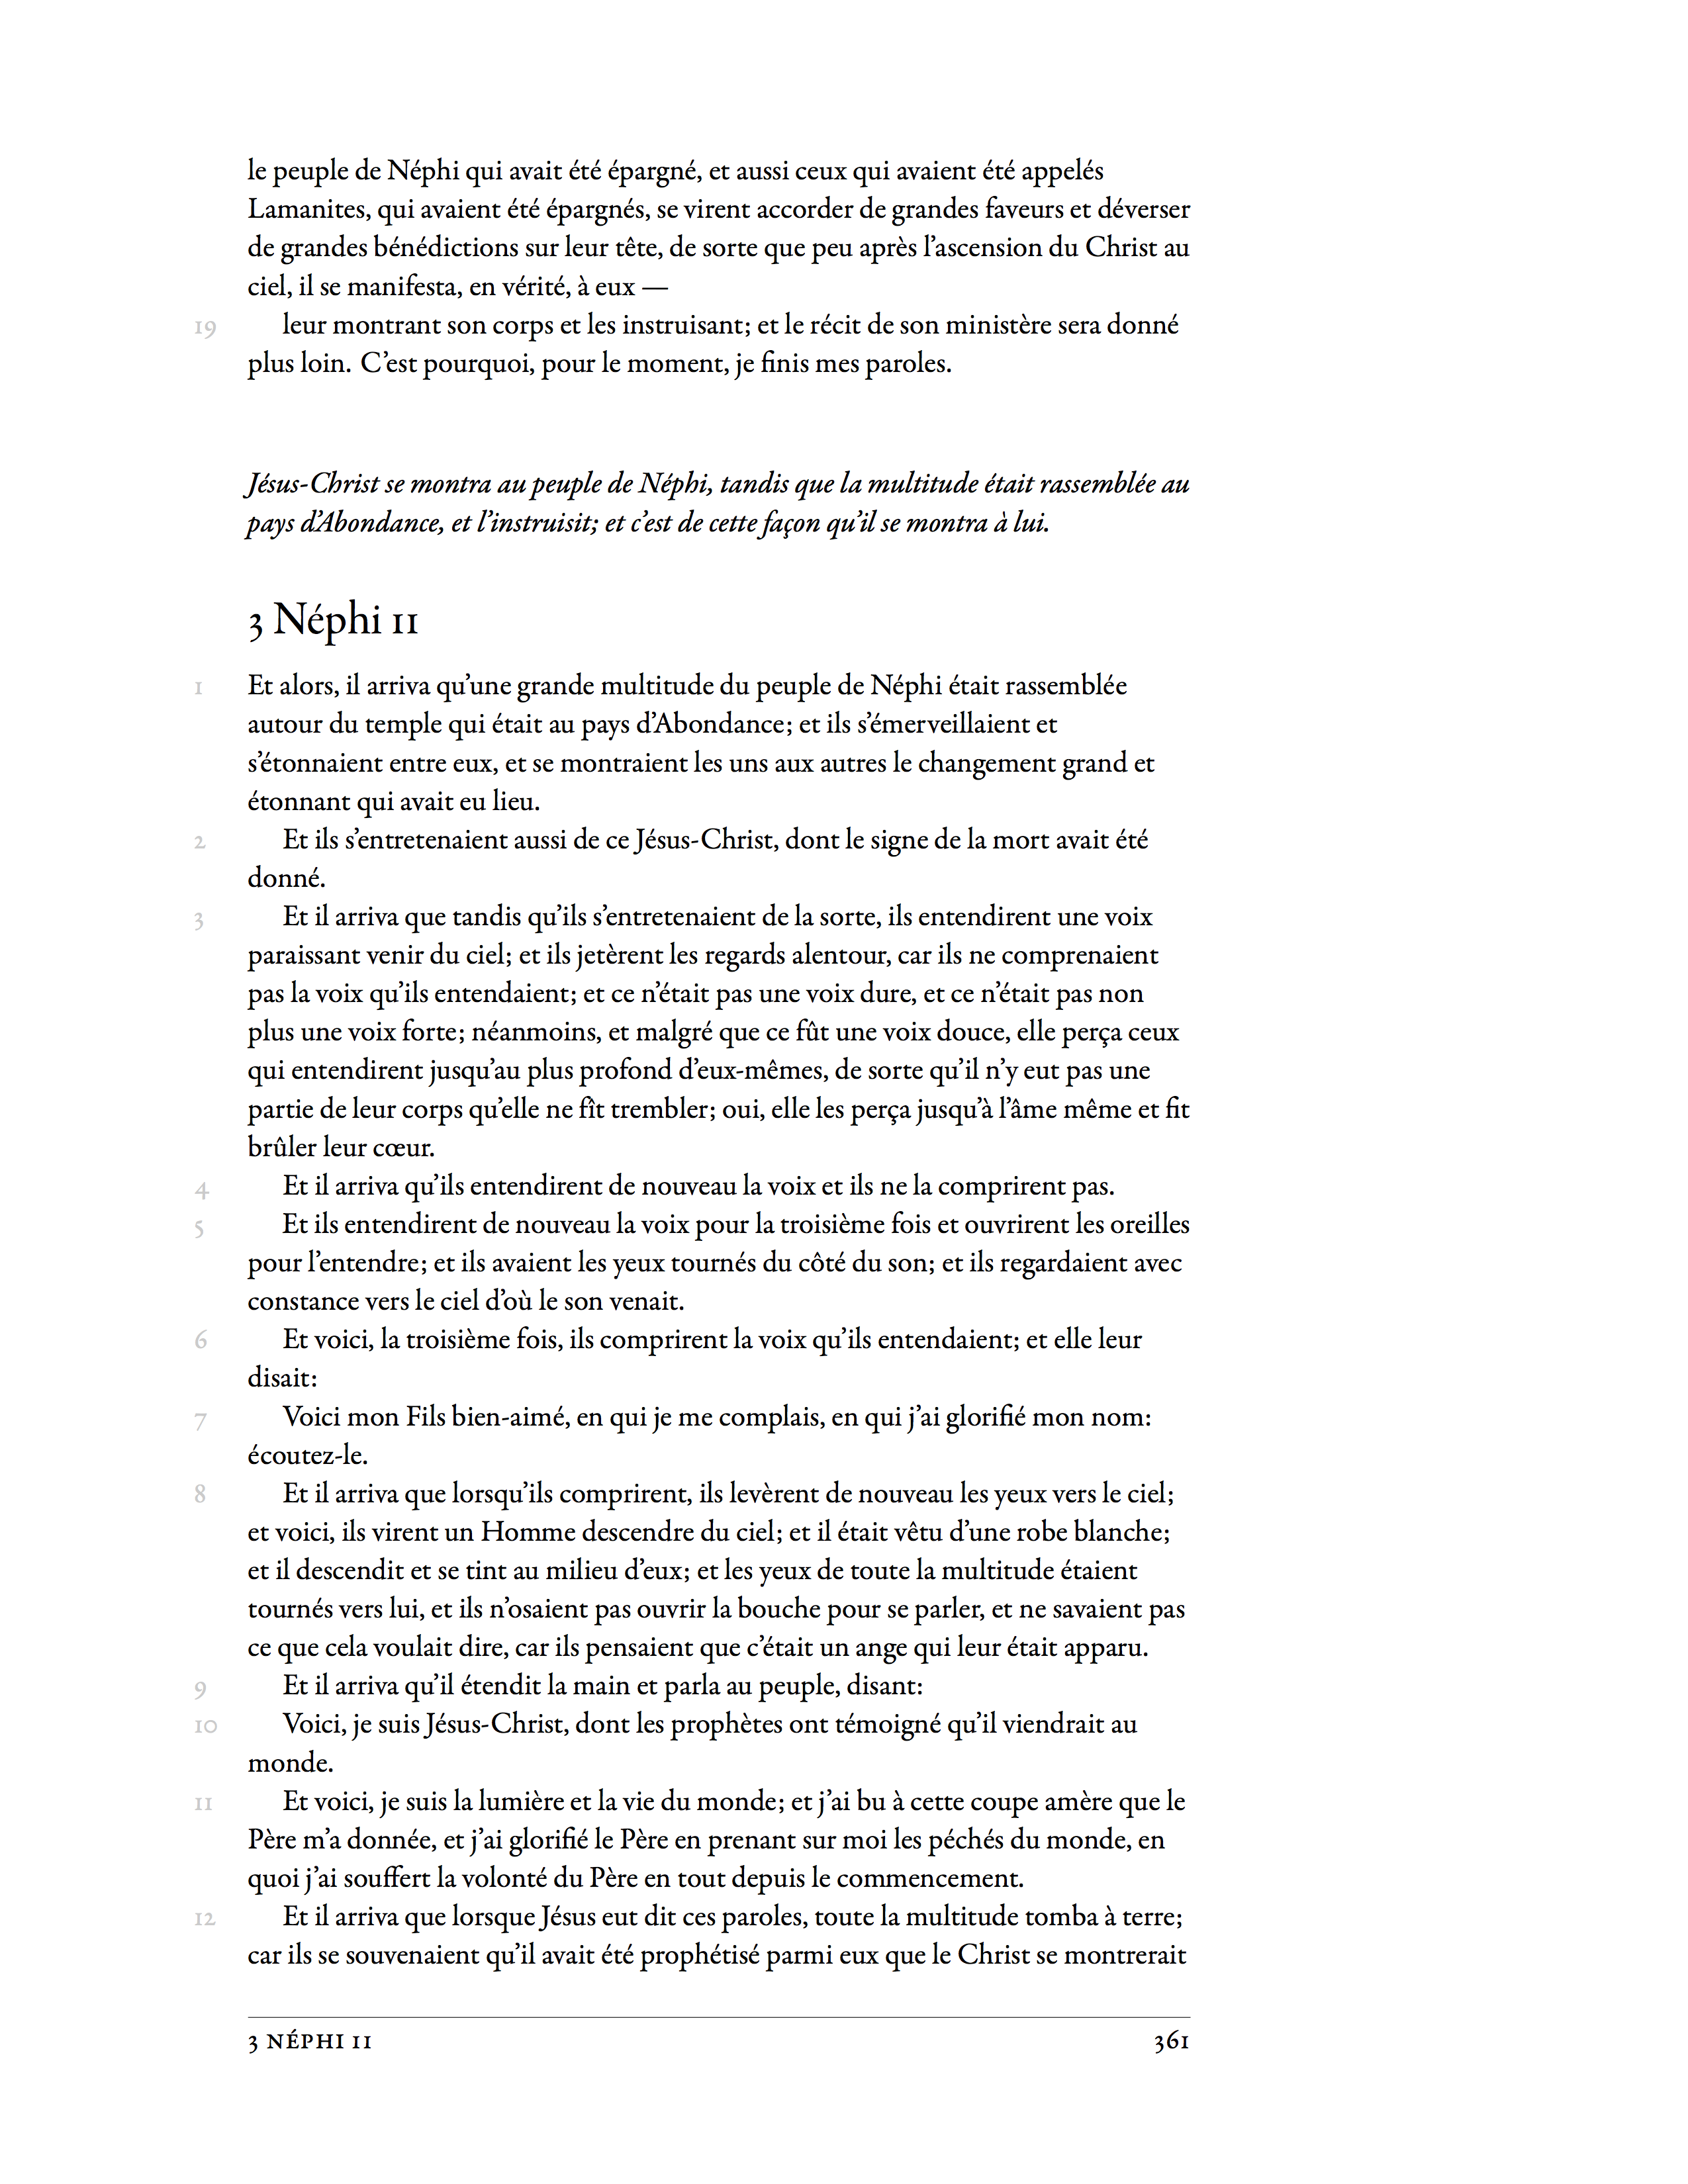 projects/study-edition/fra-bofm/study-edition-fra-bofm-02.png